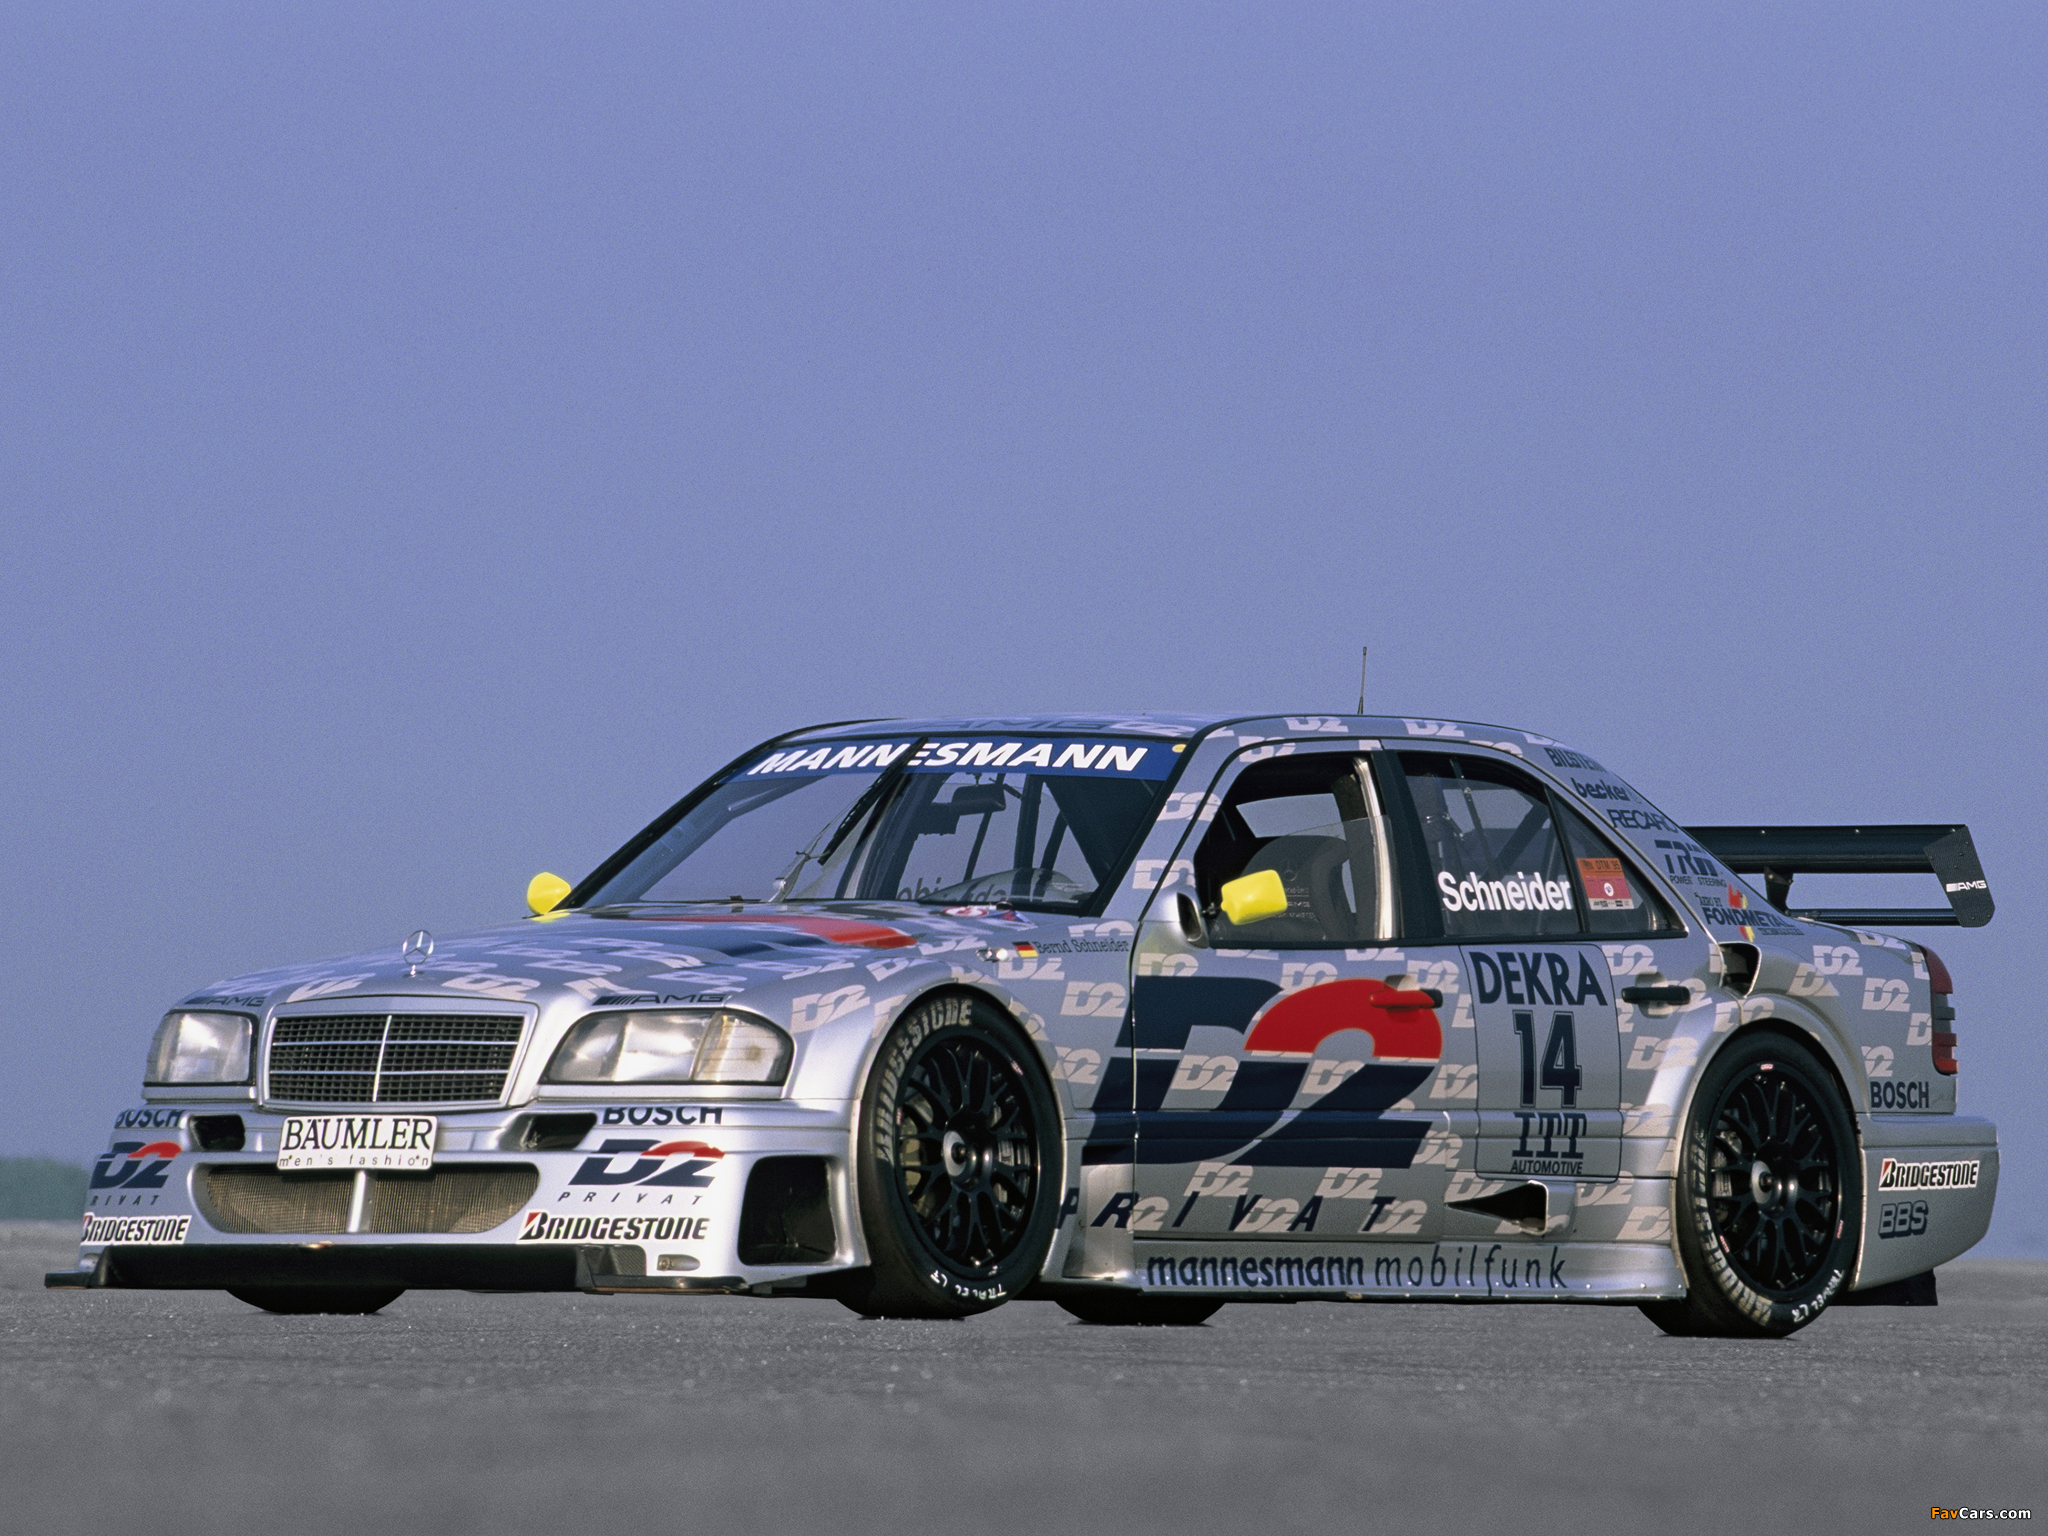 Mercedes benz c amg dtm w202 1994 wallpapers 2048x1536 for Mercedes benz race car